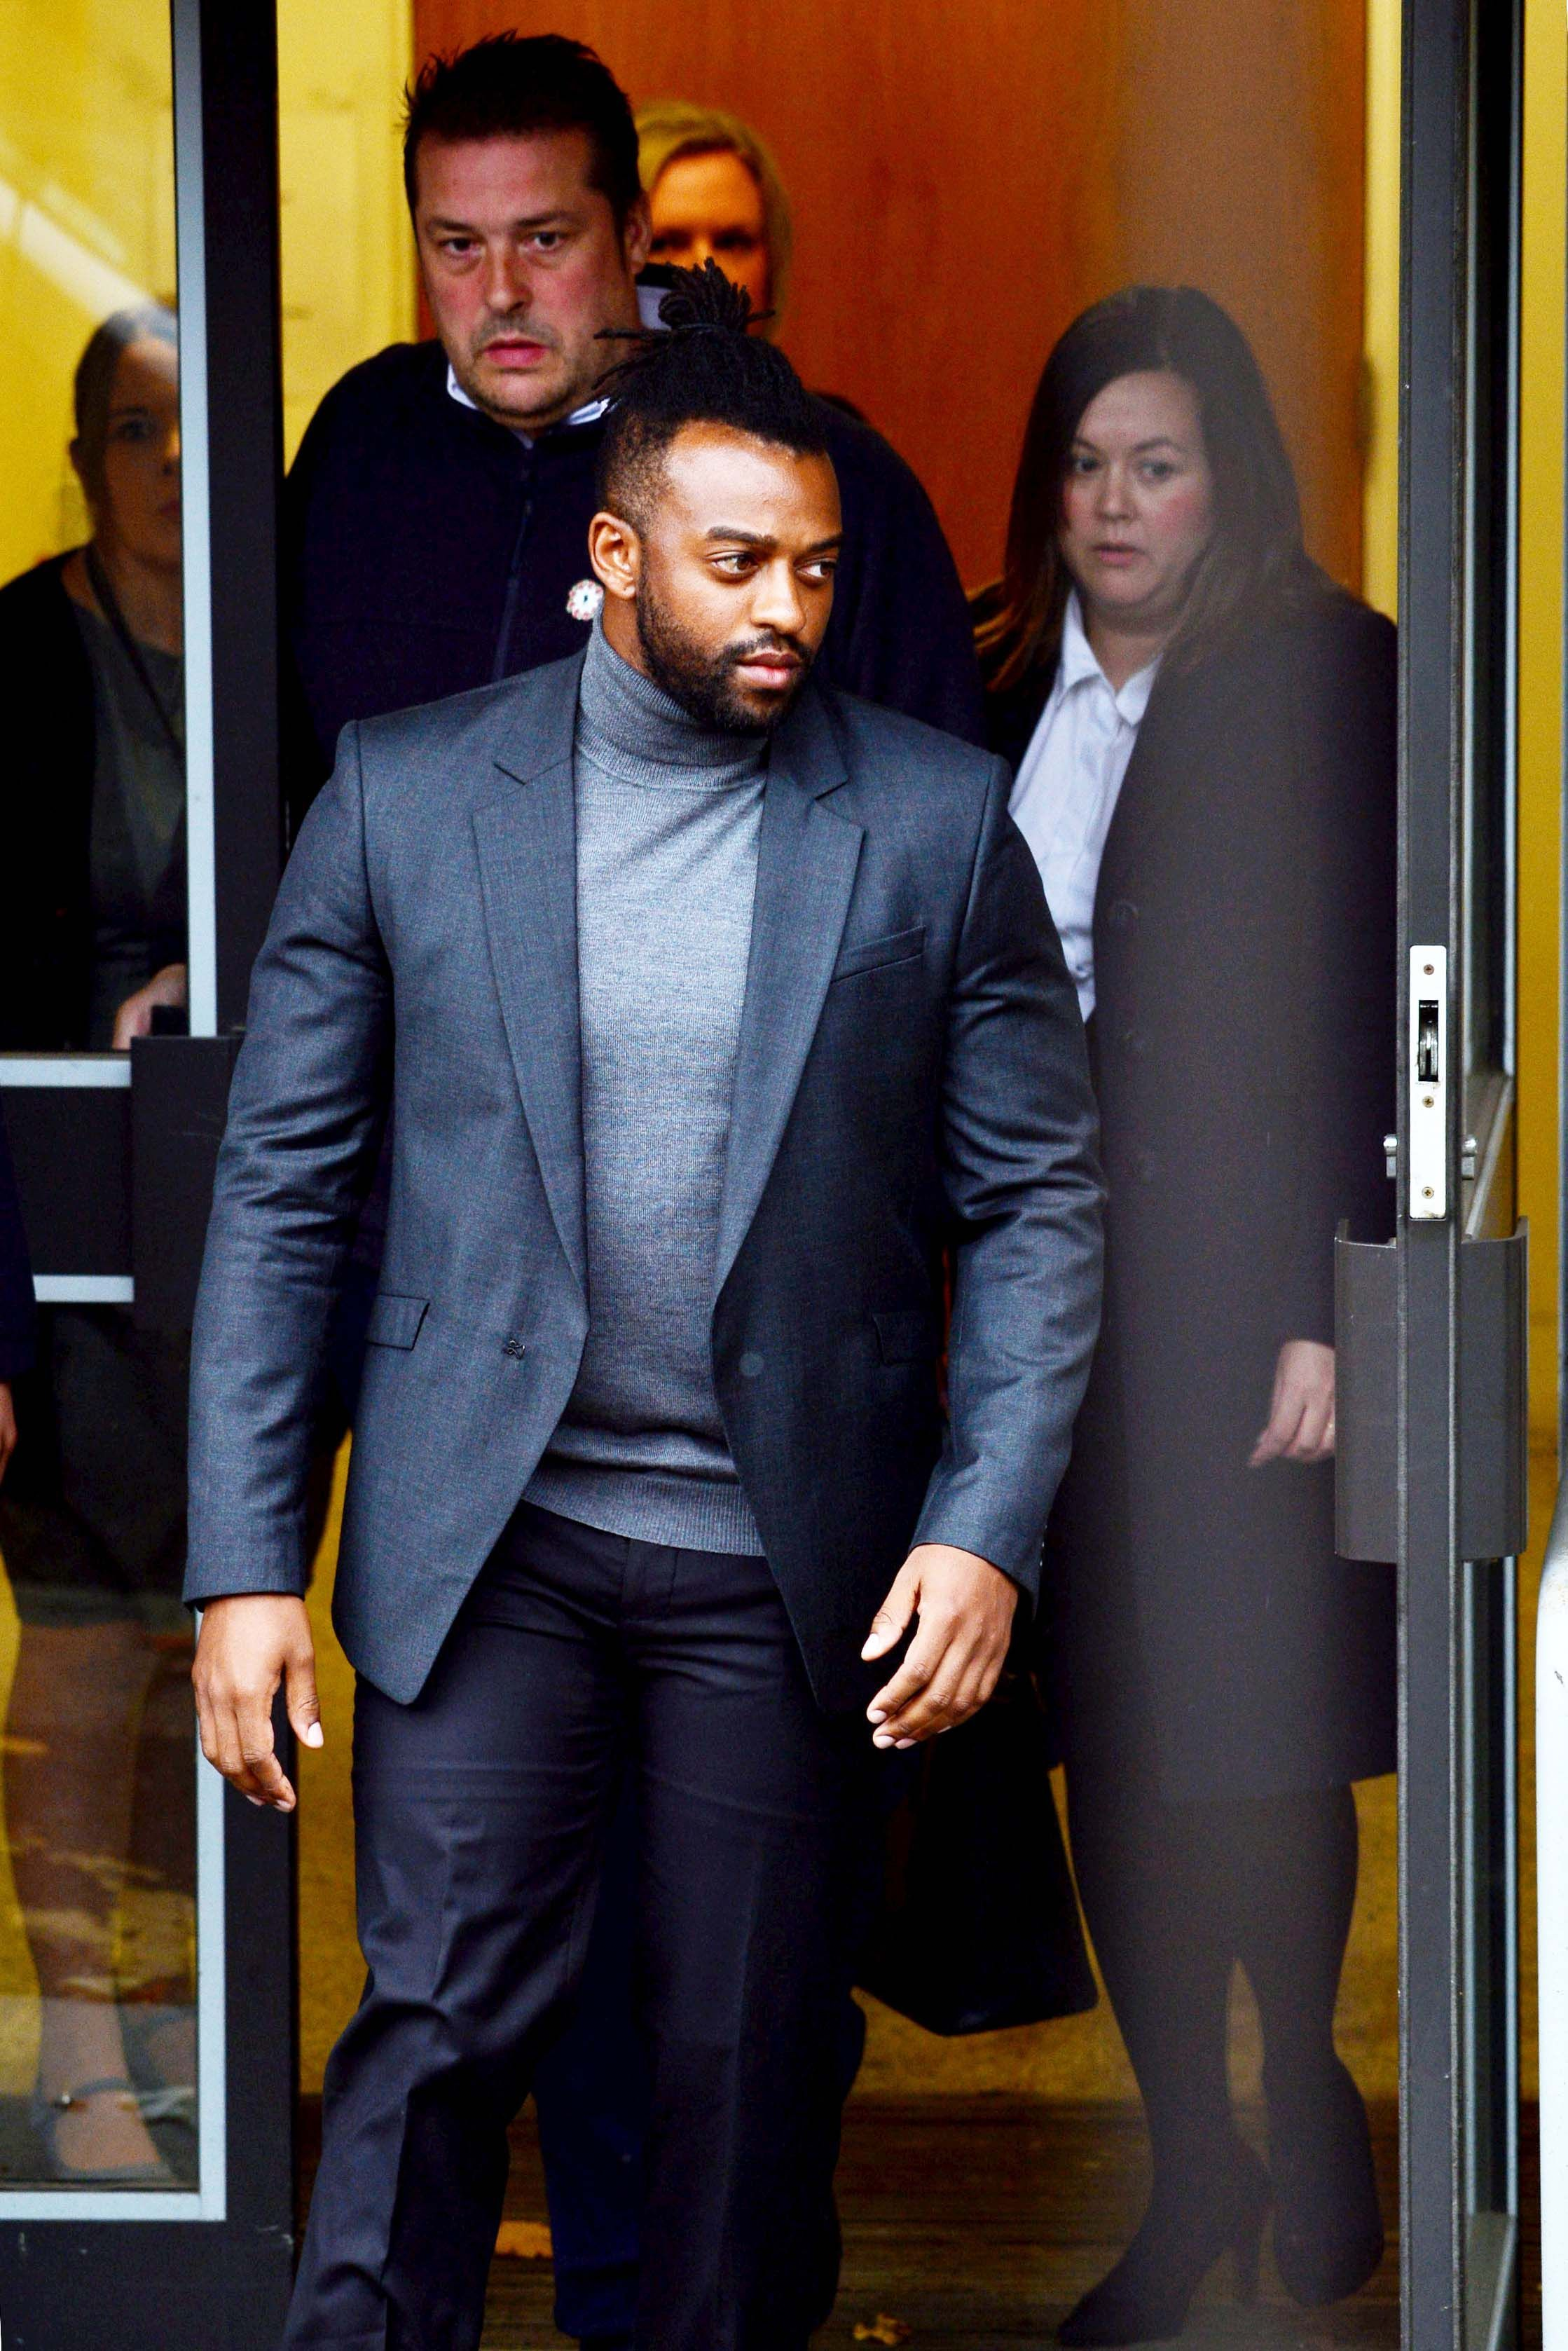 Image may contain: Ortise Williams not guilty, Oritse Williams, trial, JLS, court, result, rape, guilty, not guilty, Wolverhampton, Premiere, Apparel, Overcoat, Coat, Suit, Clothing, Fashion, Human, Person